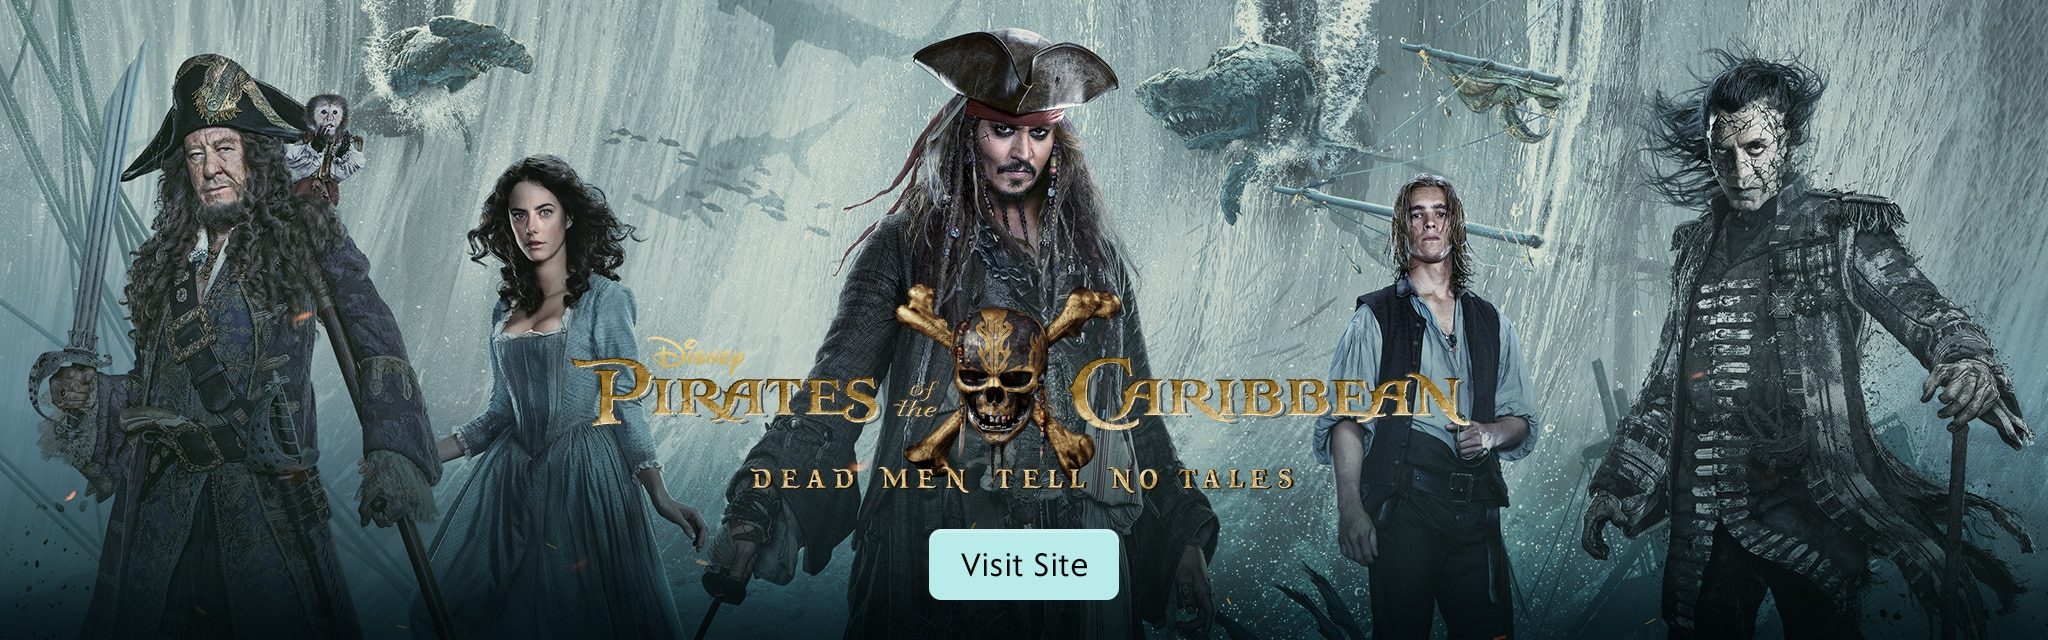 Pirates of the Caribbean | Official Website | Disney